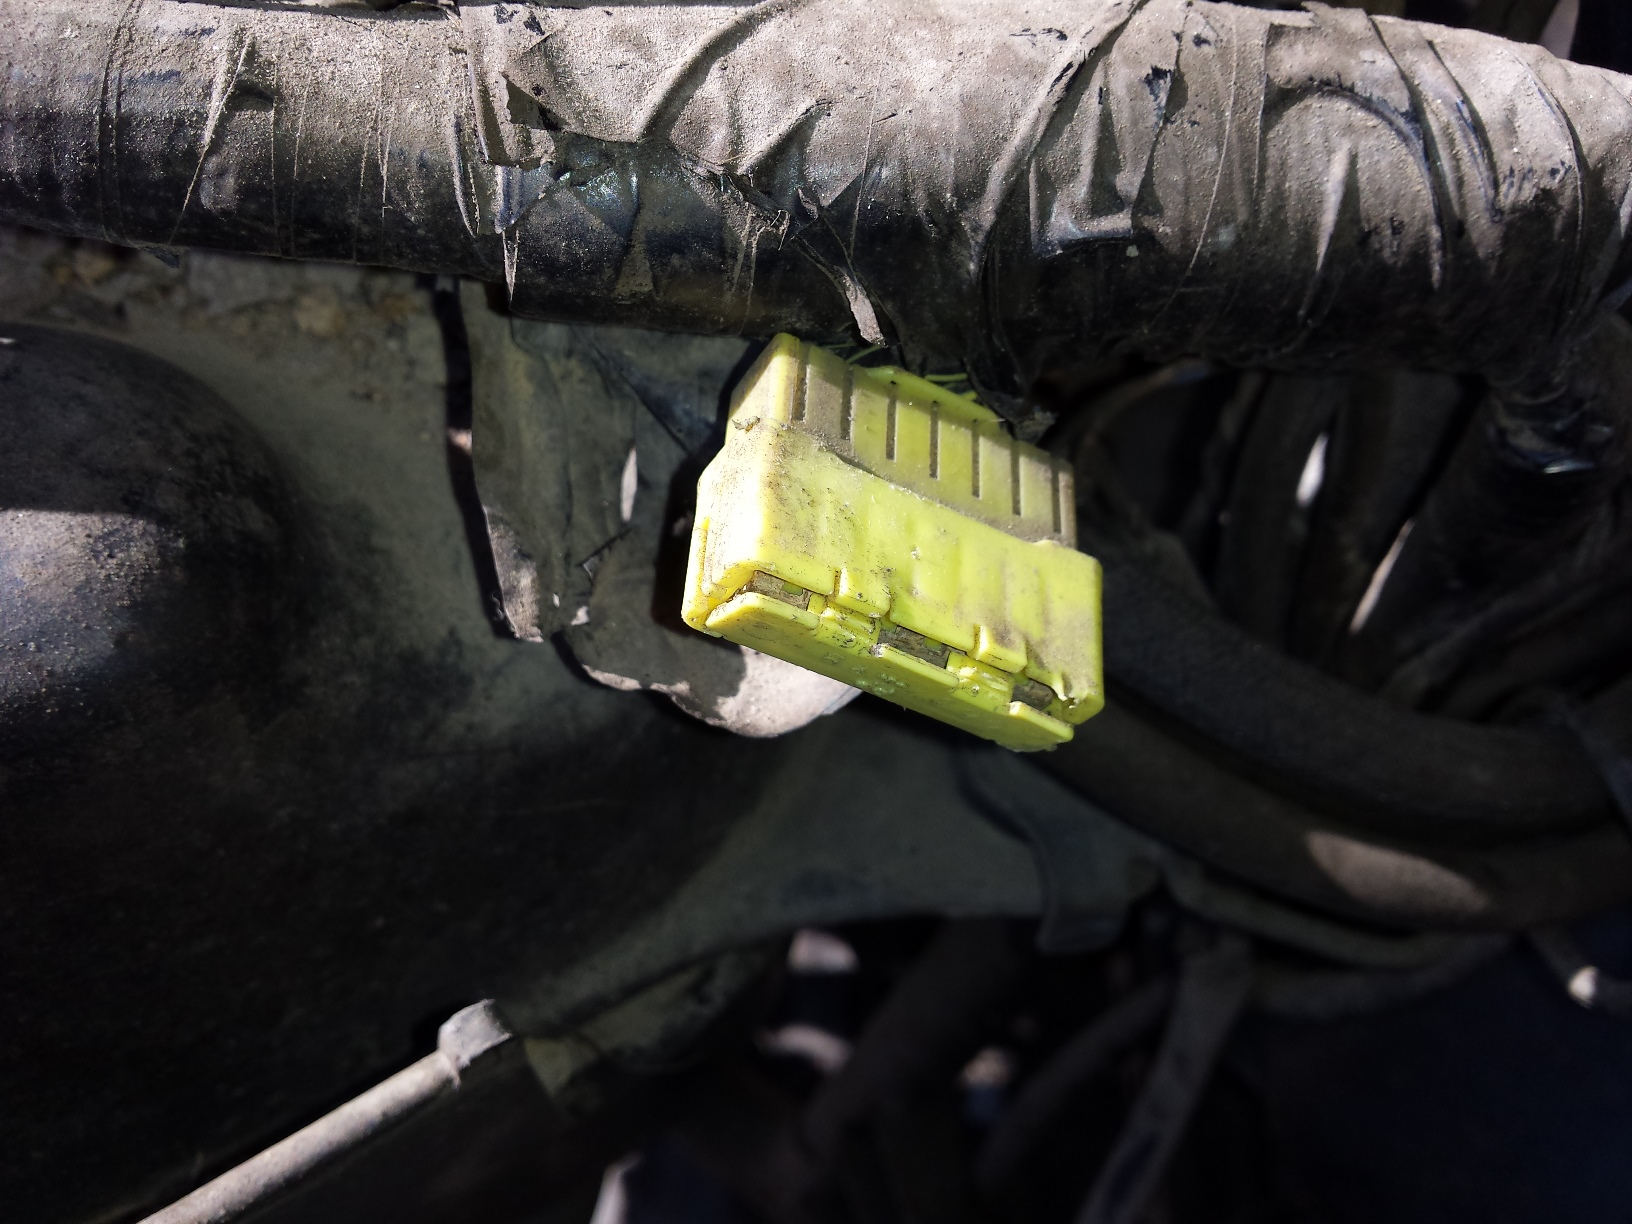 2016 kawasaki brute force 750 wiring diagram videx door entry phone atv bus connector problems a random tech is of the rear notice that it packed with mud despite fact was sealed up inside tightly wrapped electrical harness